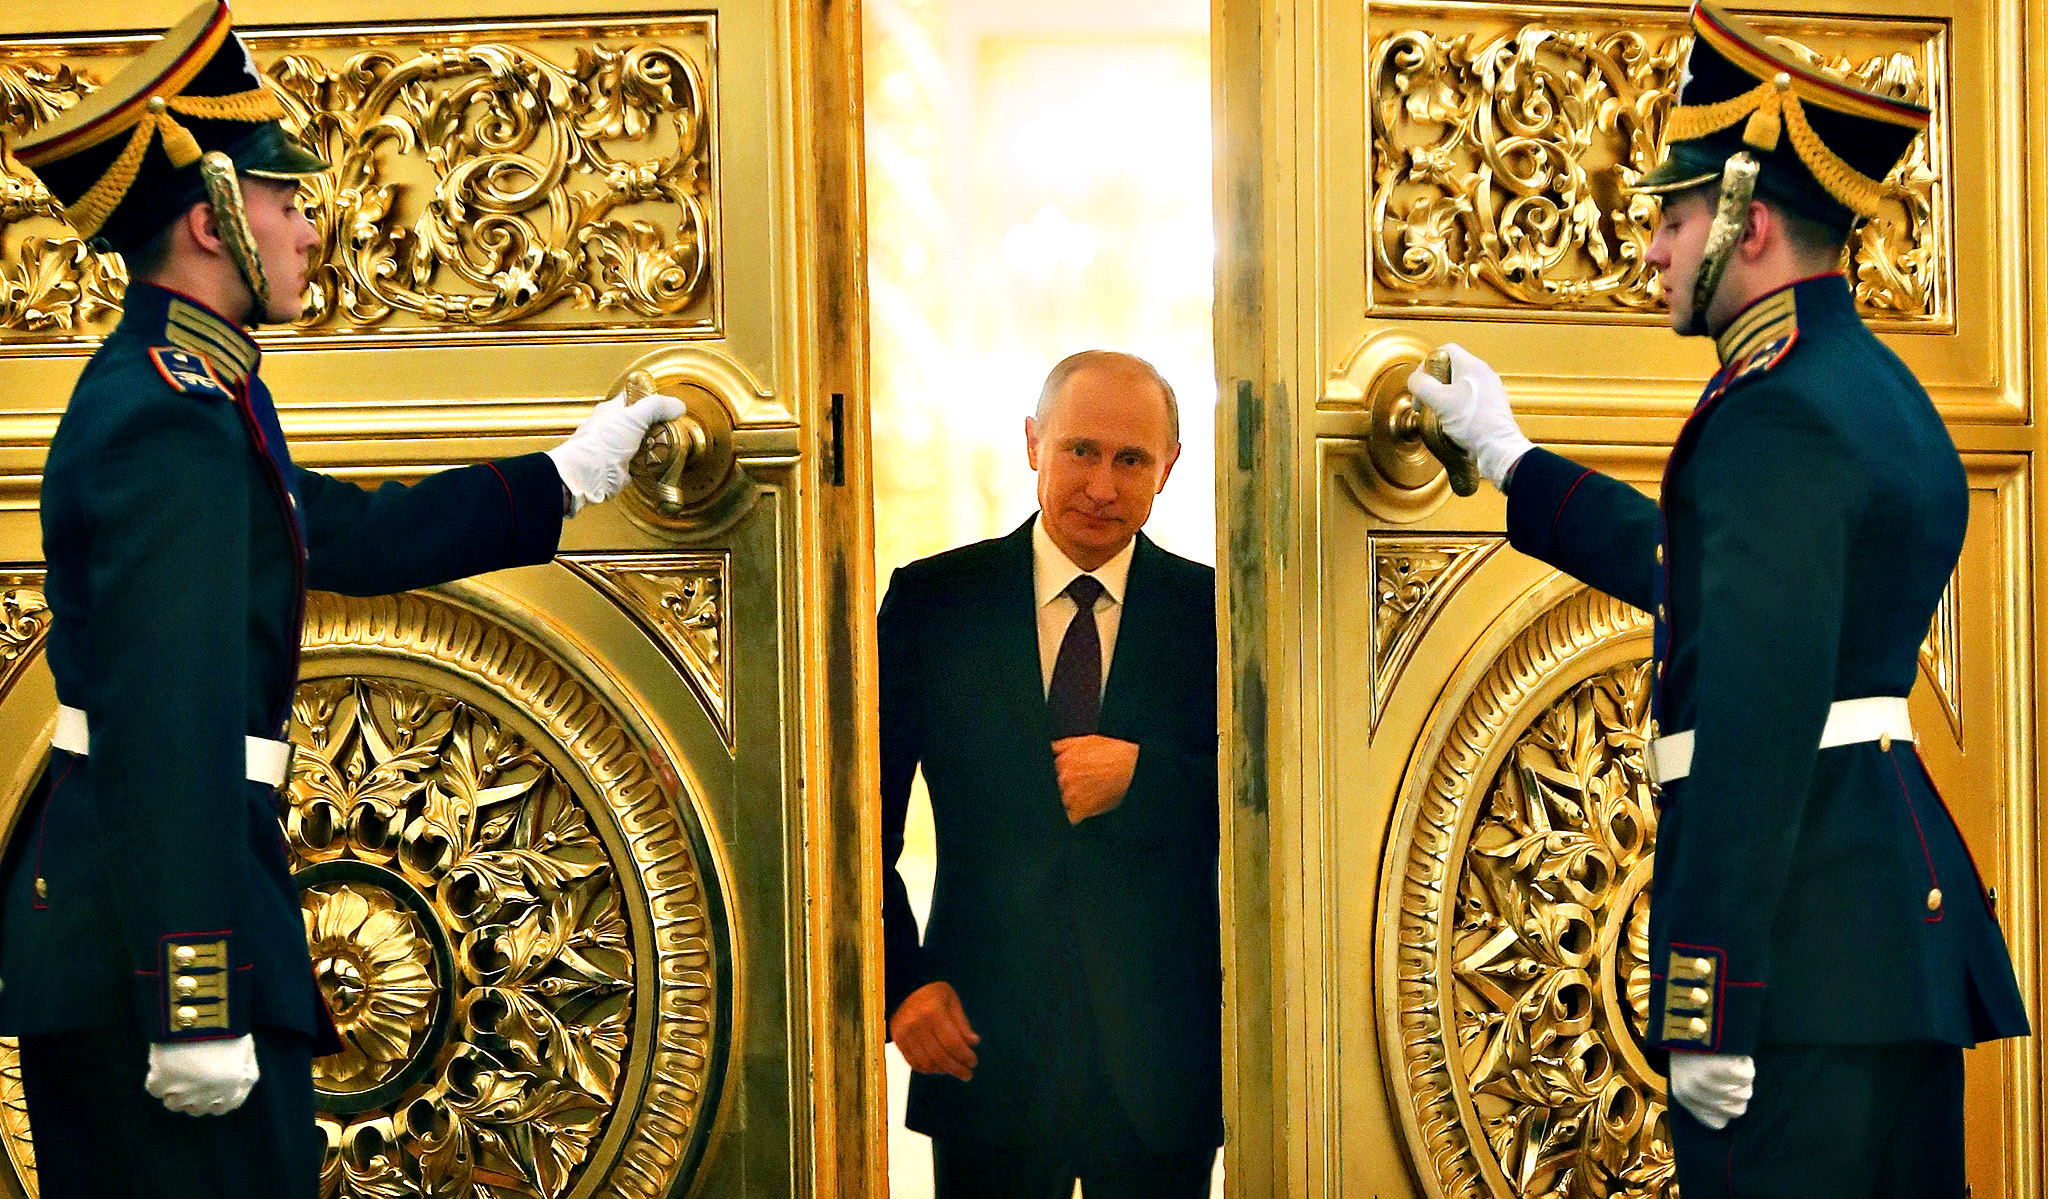 http://blogs.ft.com/photo-diary/files/2013/12/putin.jpg